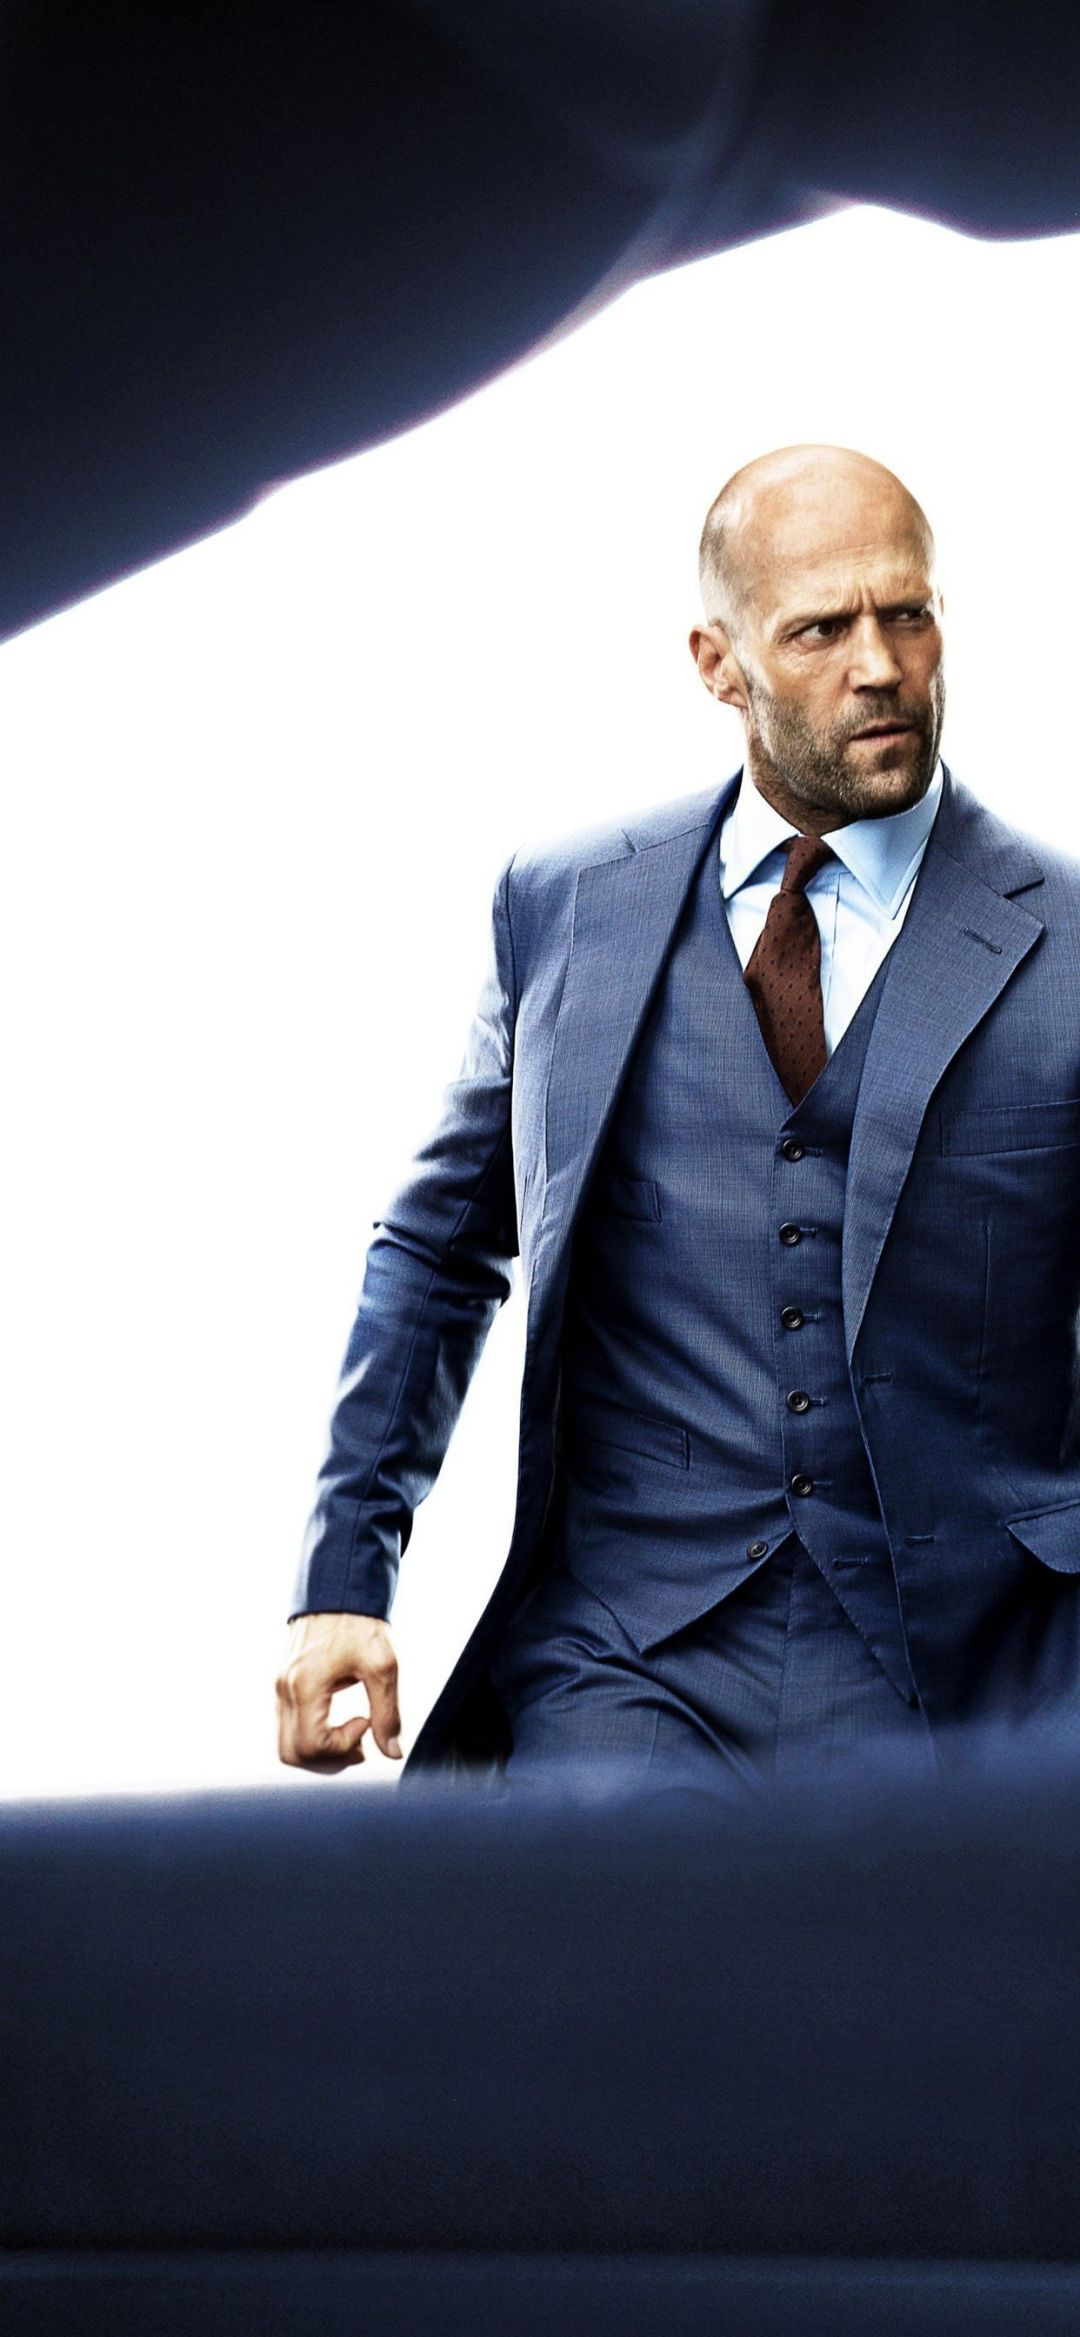 [40] Jason Statham   Android iPhone Desktop HD Backgrounds 1080x2337